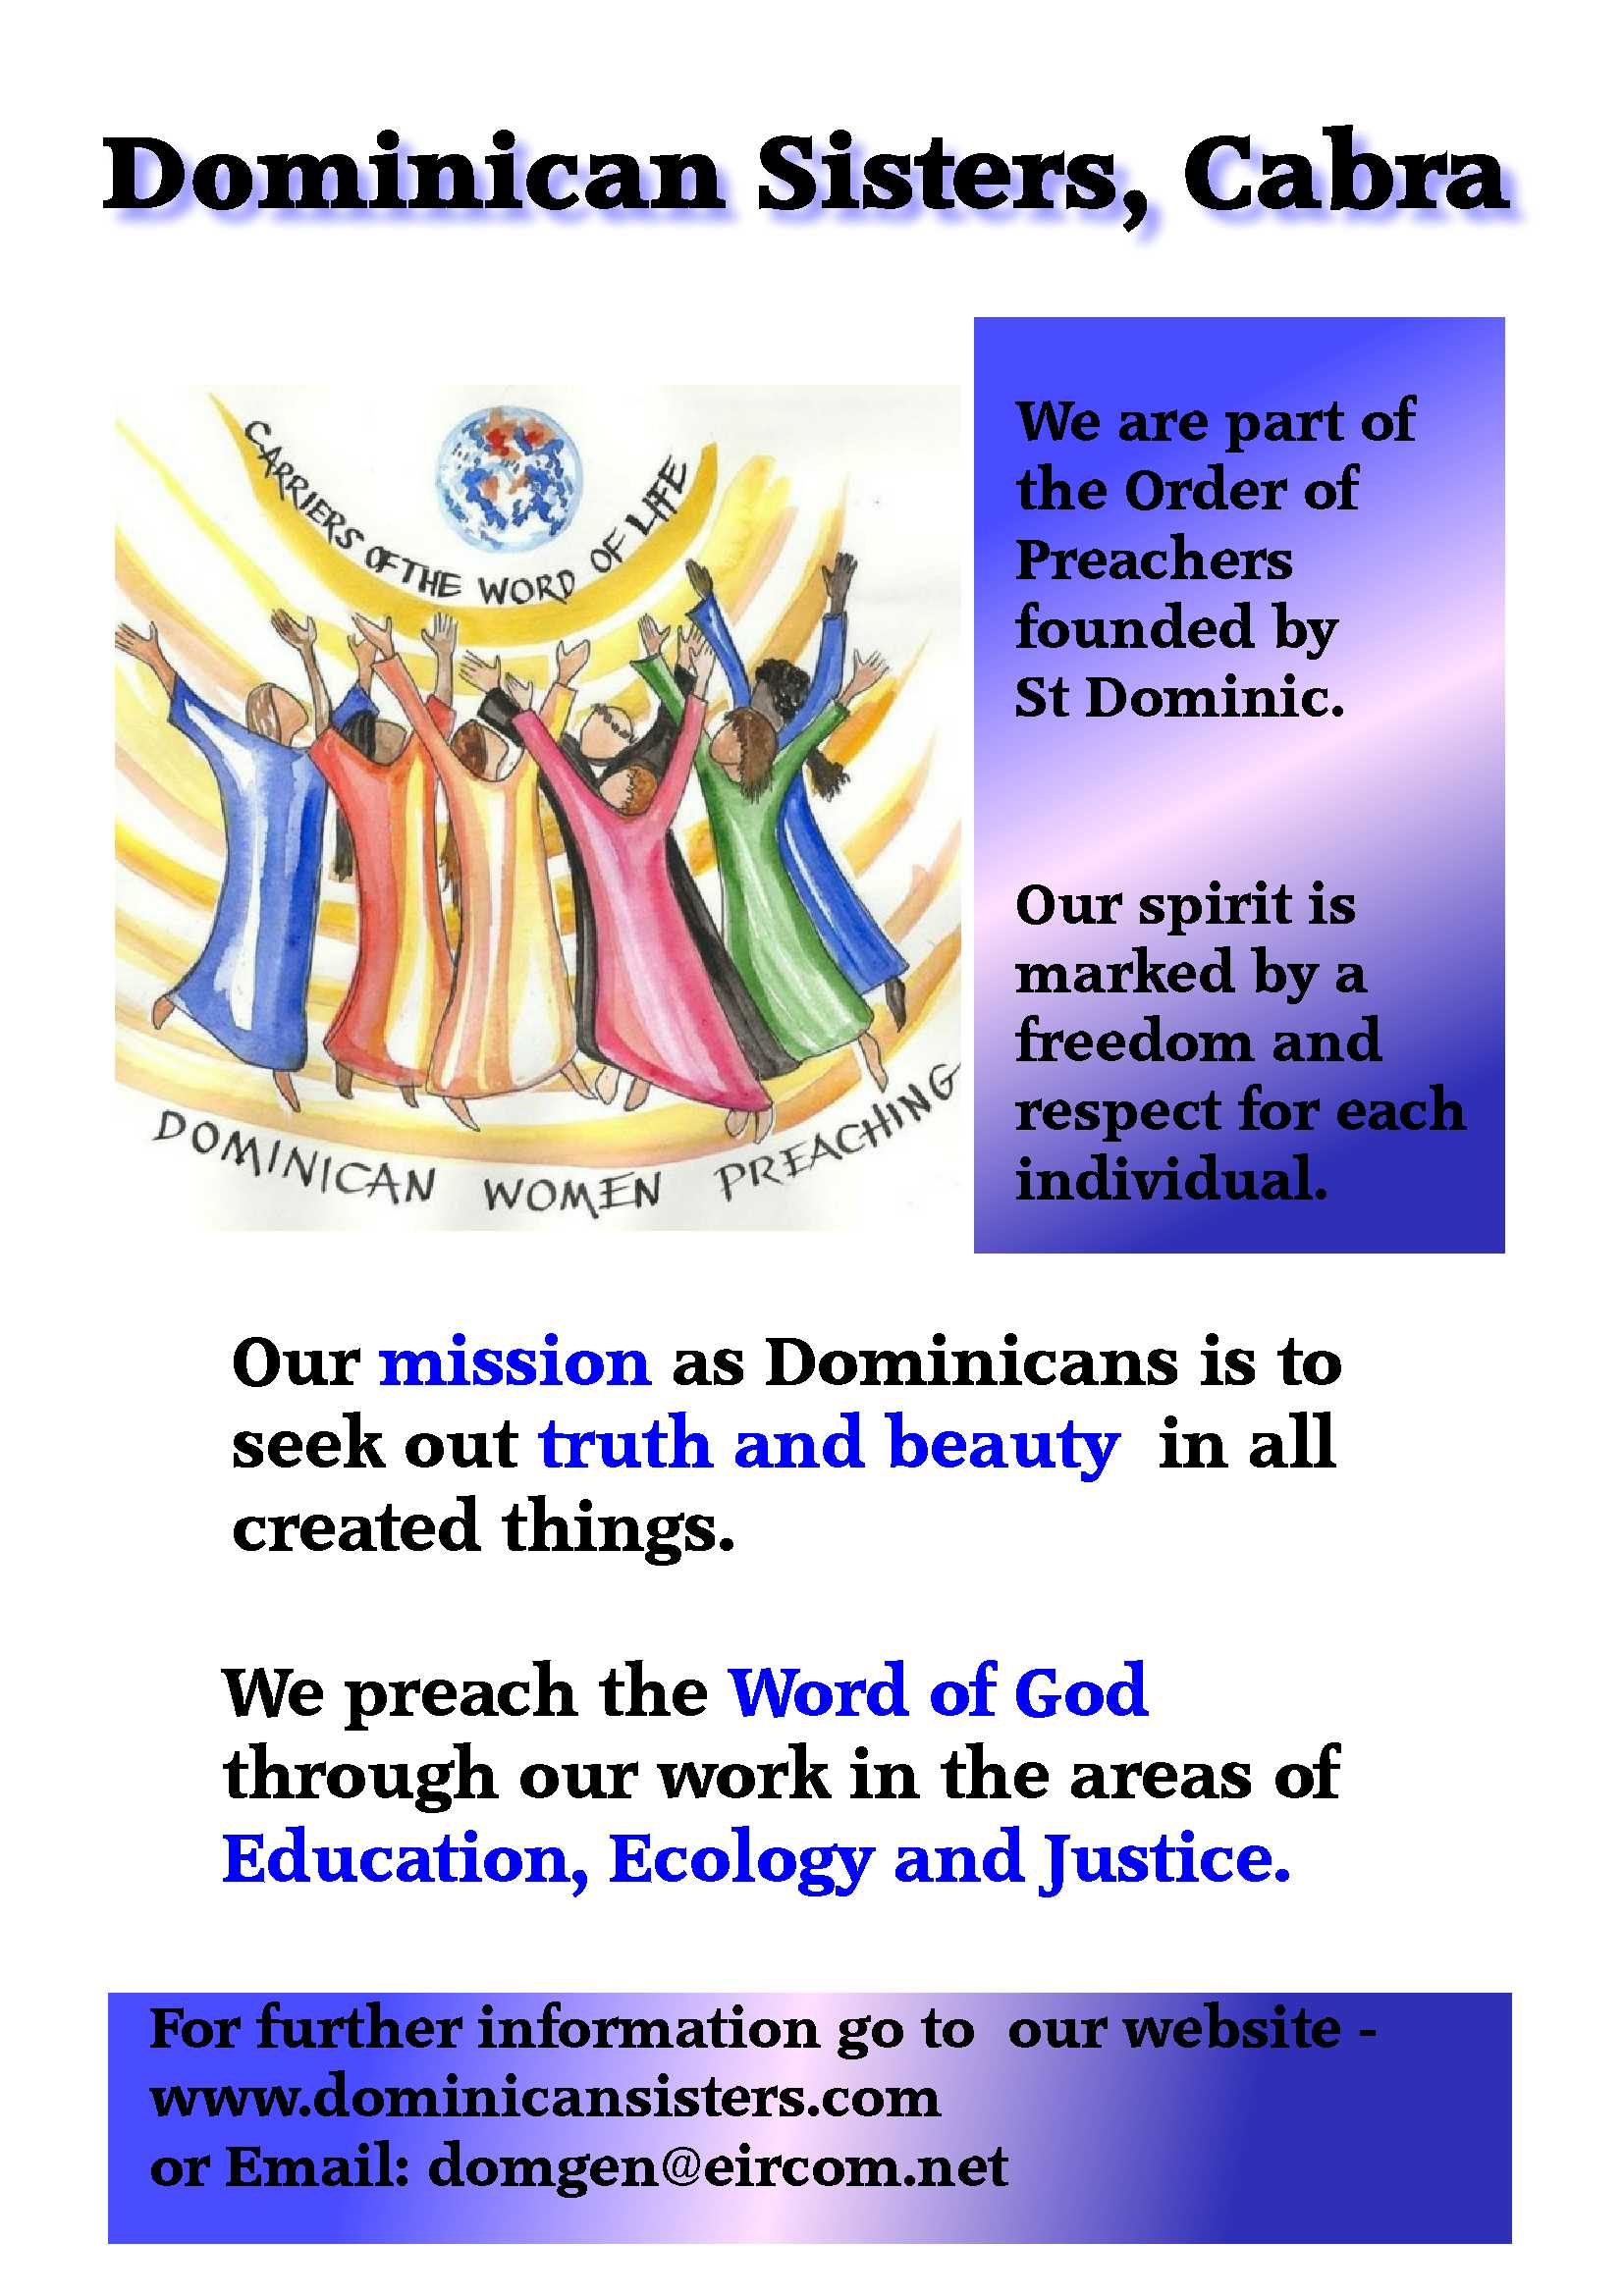 Vocations Promotion Dominican Sisters Cabra